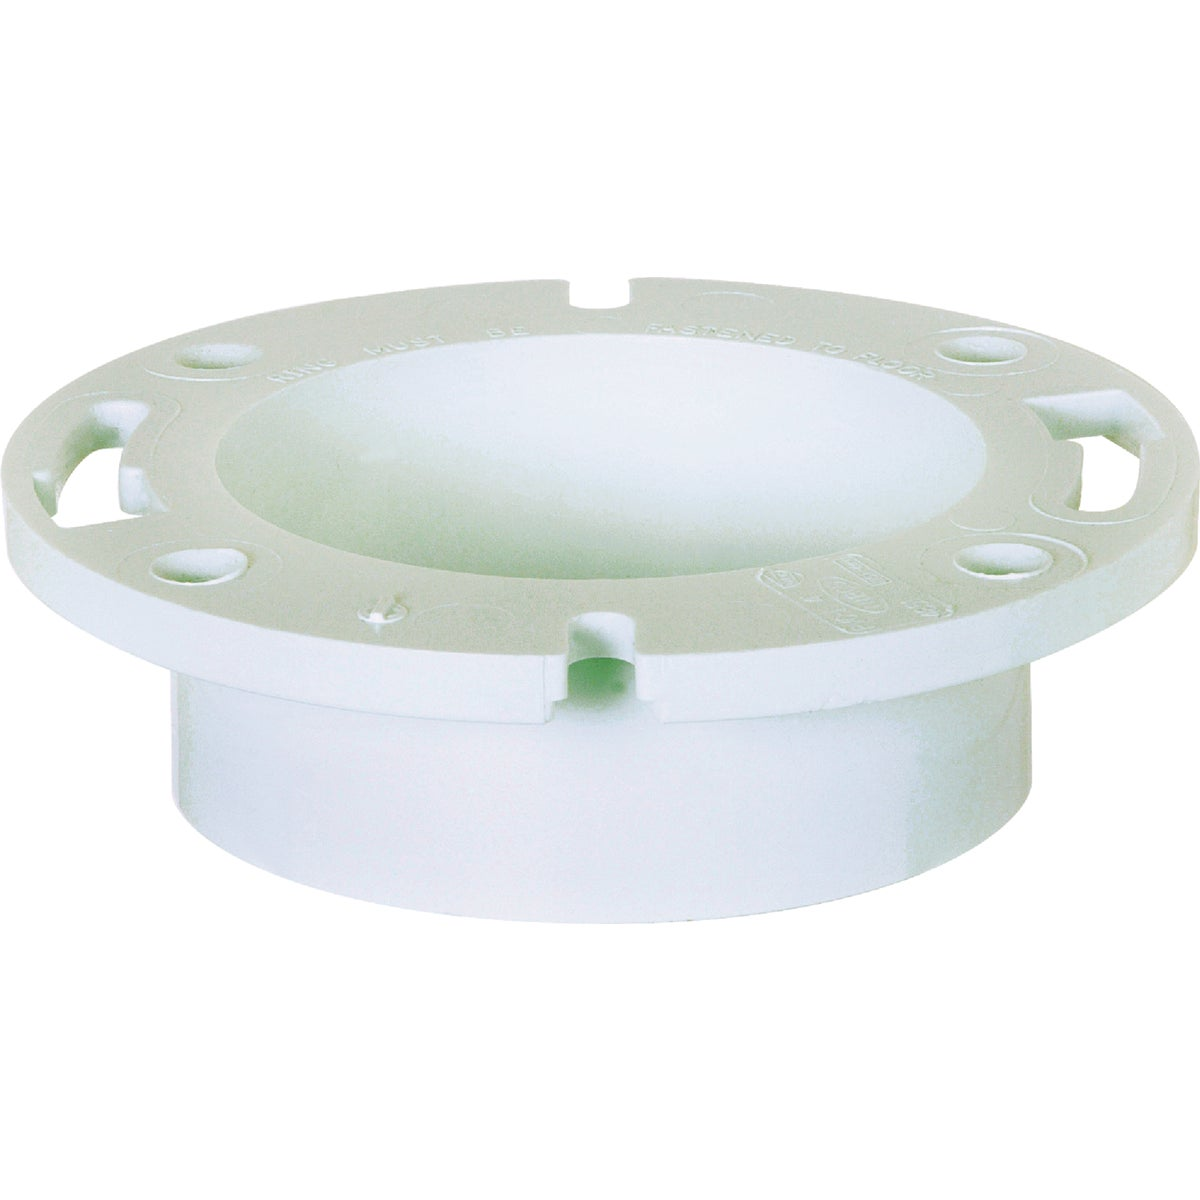 "4""HUB PVC CLOSET FLANGE - 886-4P by Sioux Chief Mfg"